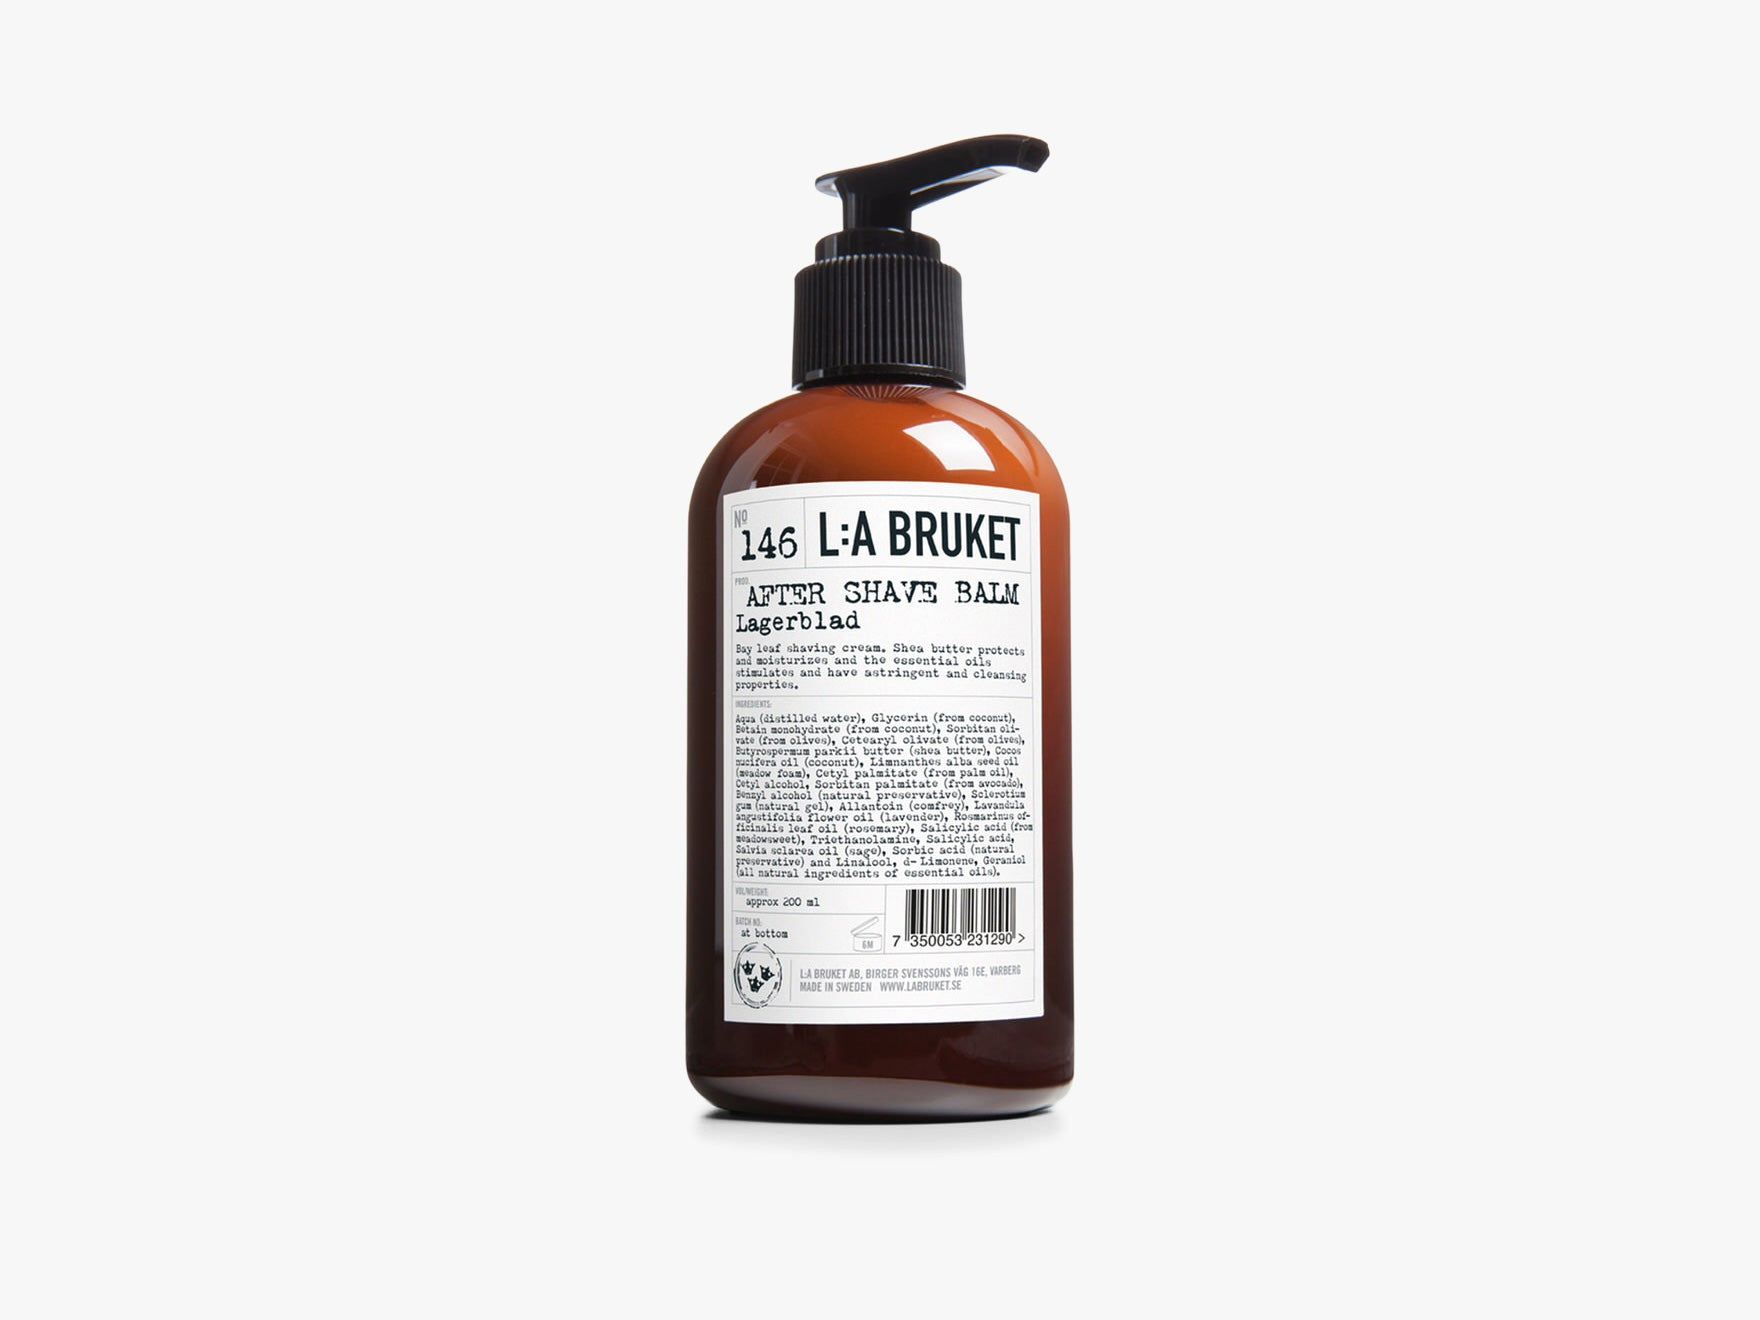 146 Aftershave Balm Laurbærblad fra L:A Bruket